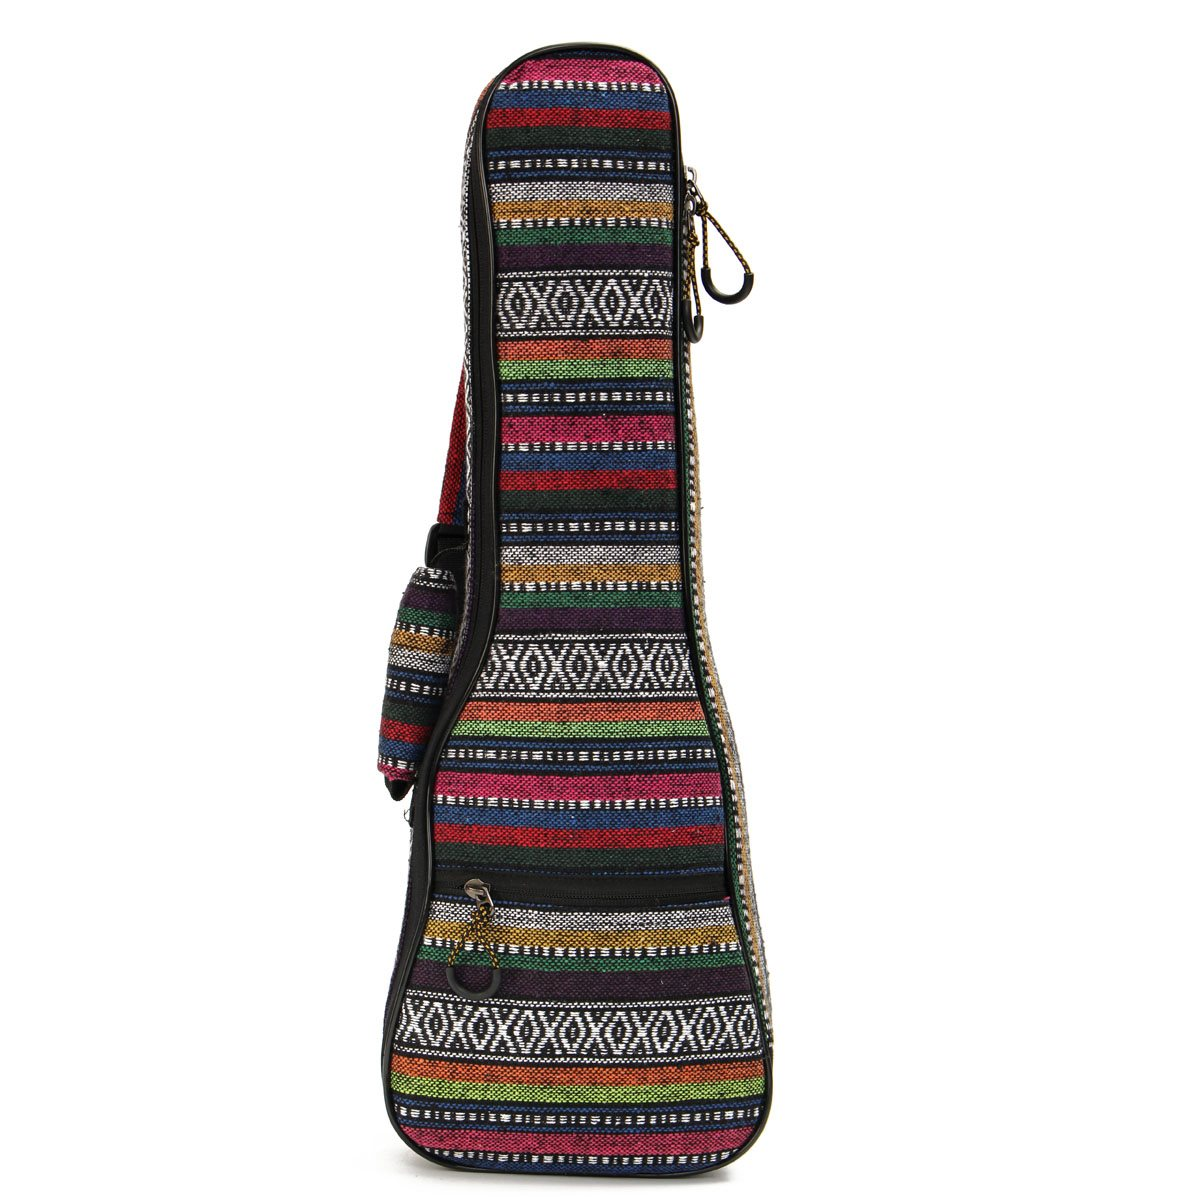 Cotton+Nylon Soft Padded Portable Guitar Gig Bag Ukulele Case Cover Backpack With Double Shoulder For 21 Inch Ukulele купить